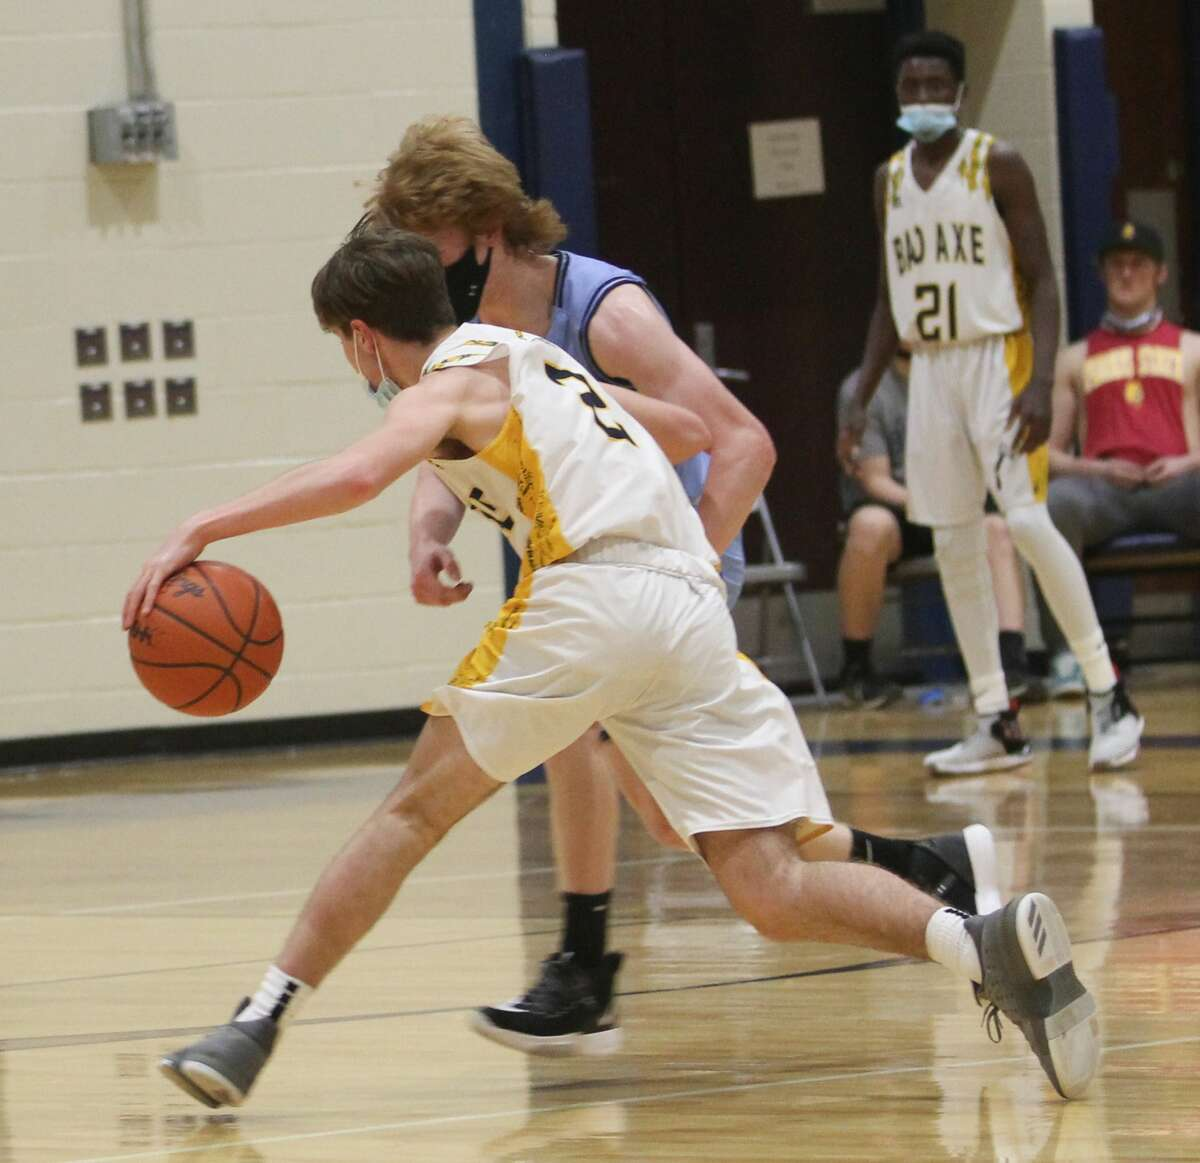 The Bad Axe boys basketball team ran past visiting Sanford Meridian on Friday for a 56-30 win.